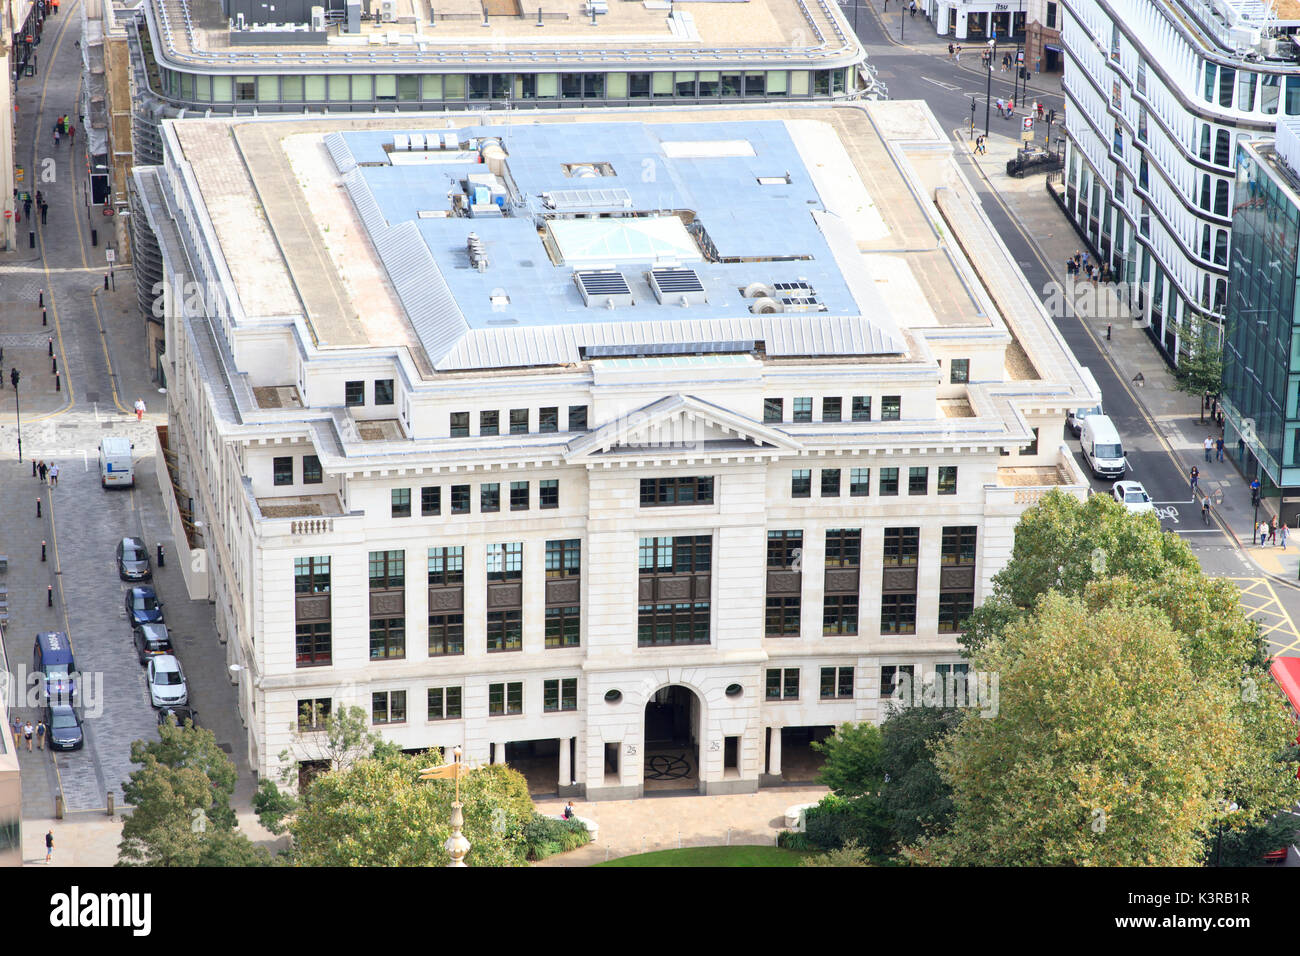 25 Cannon Street, as seen from St. Paul's Cathedral. - Stock Image